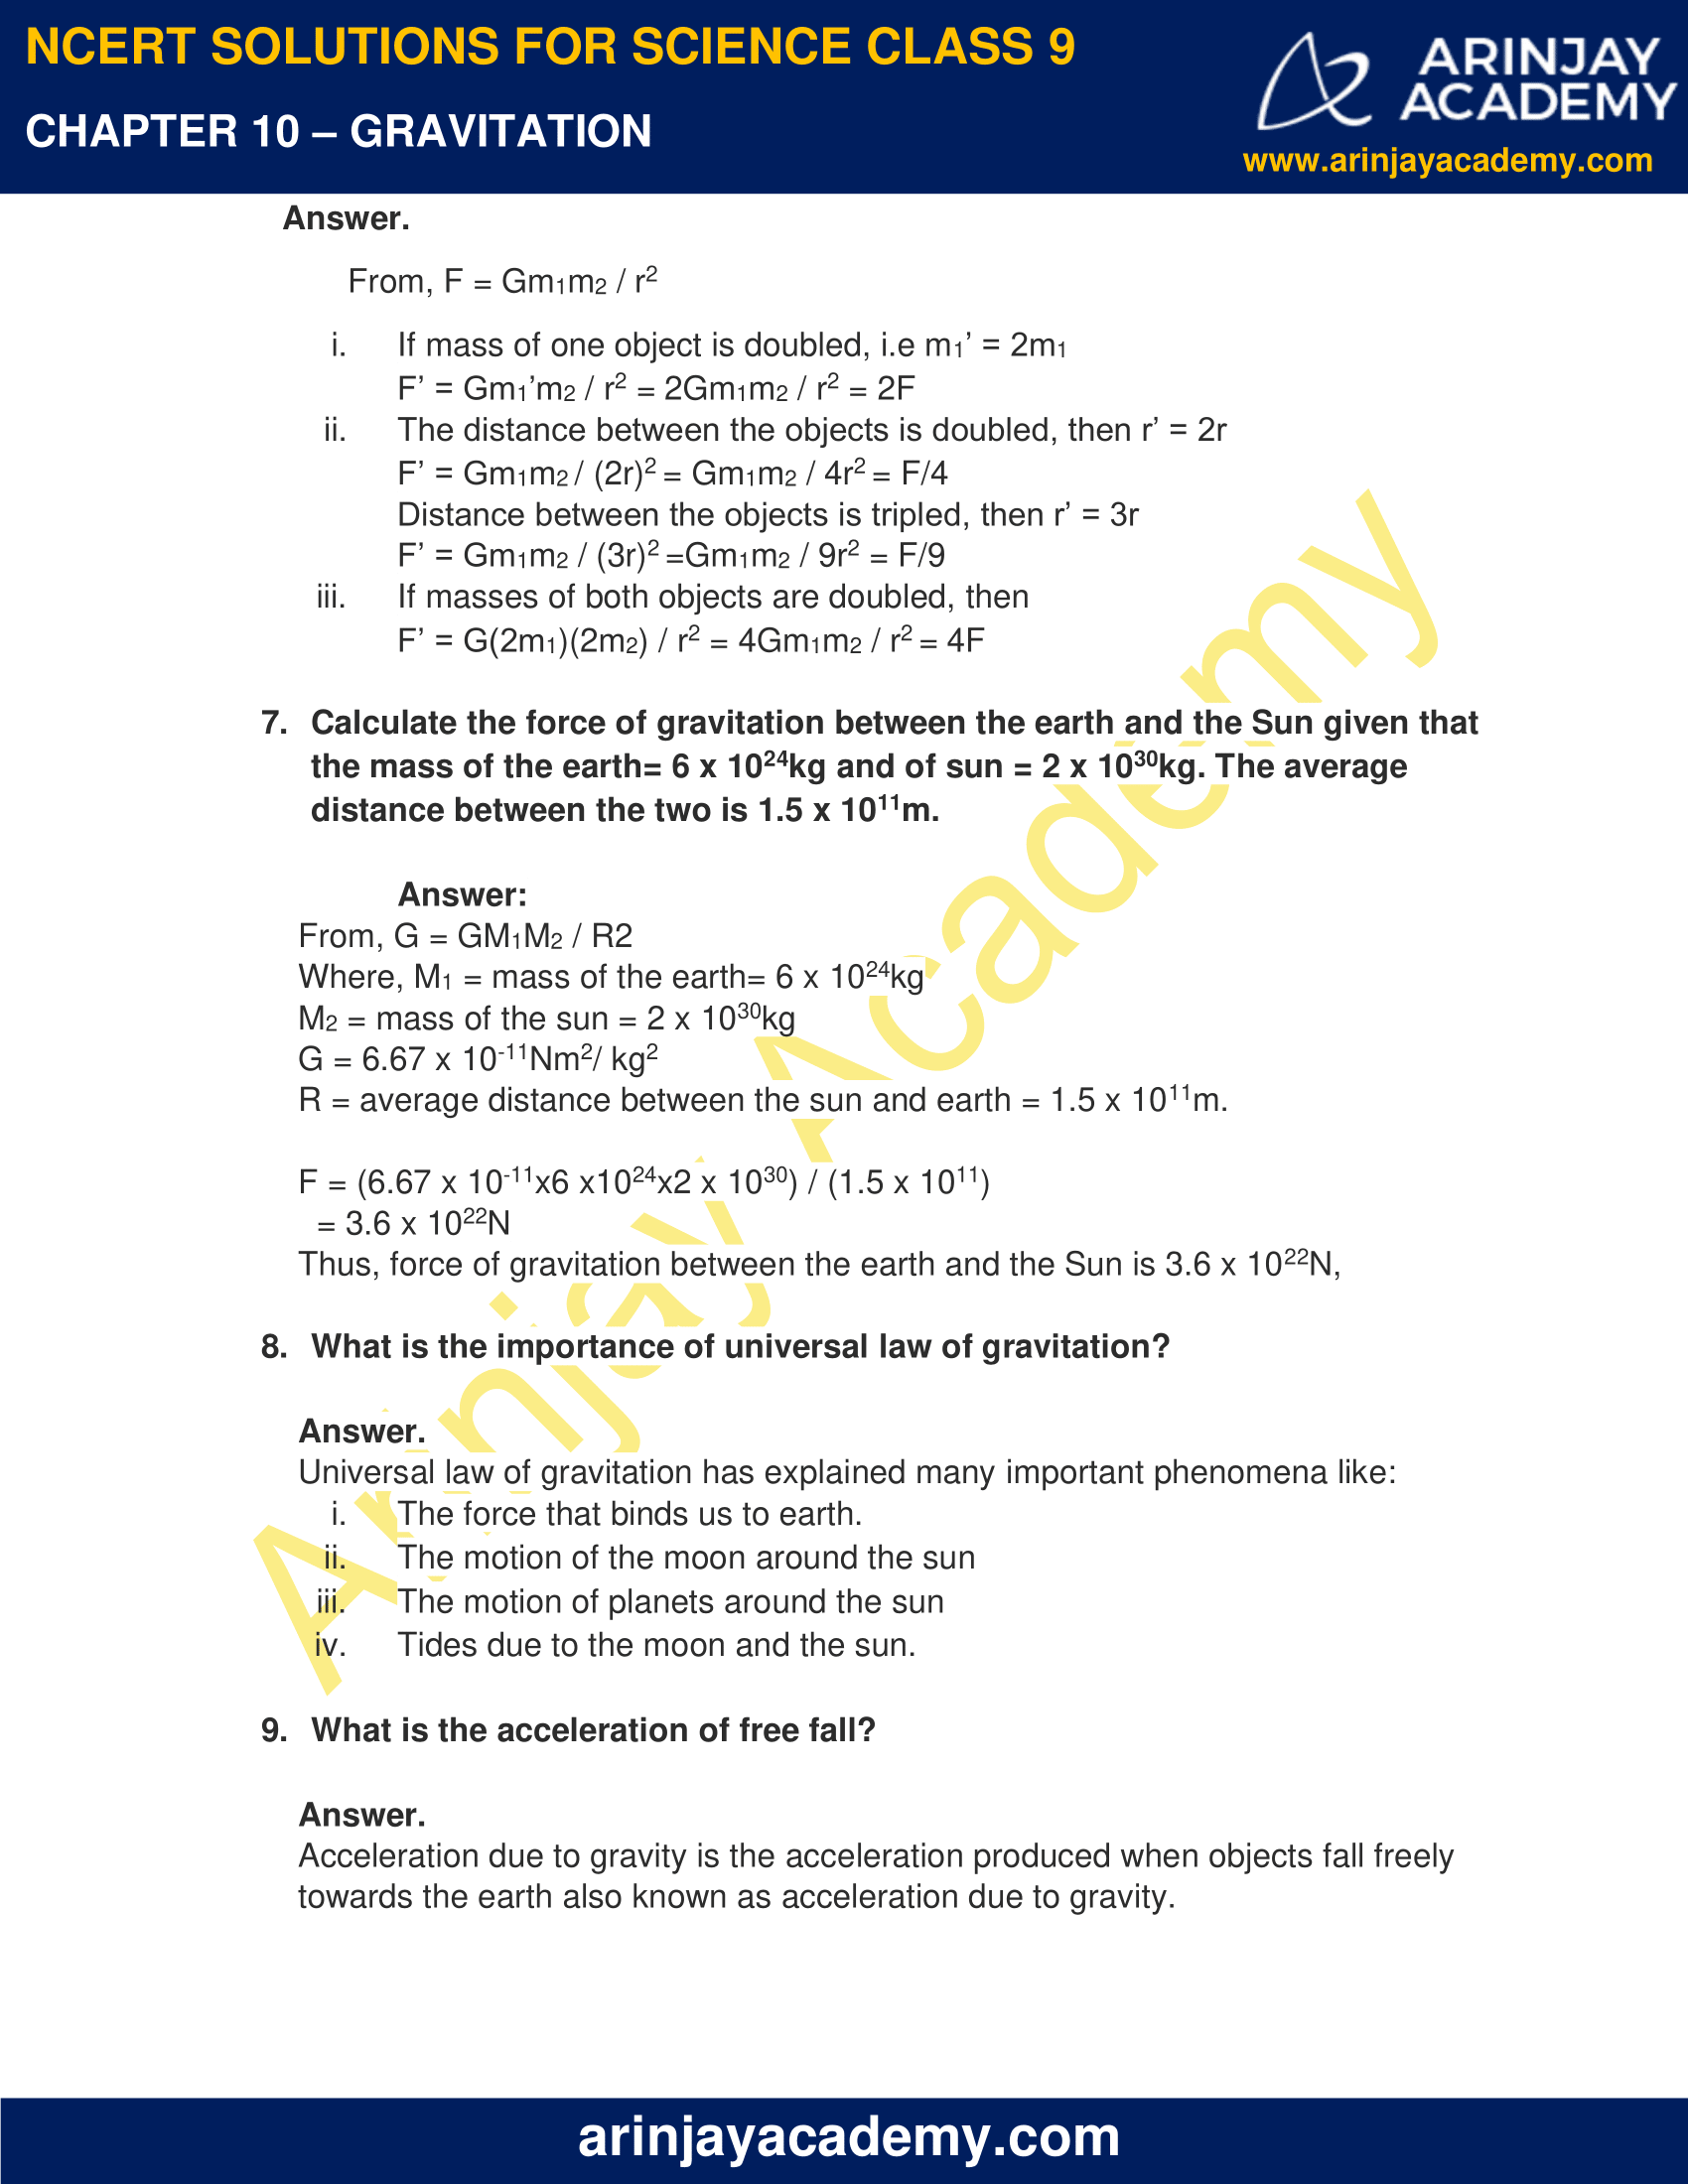 NCERT Solutions for Class 9 Science Chapter 10 Gravitation image 5